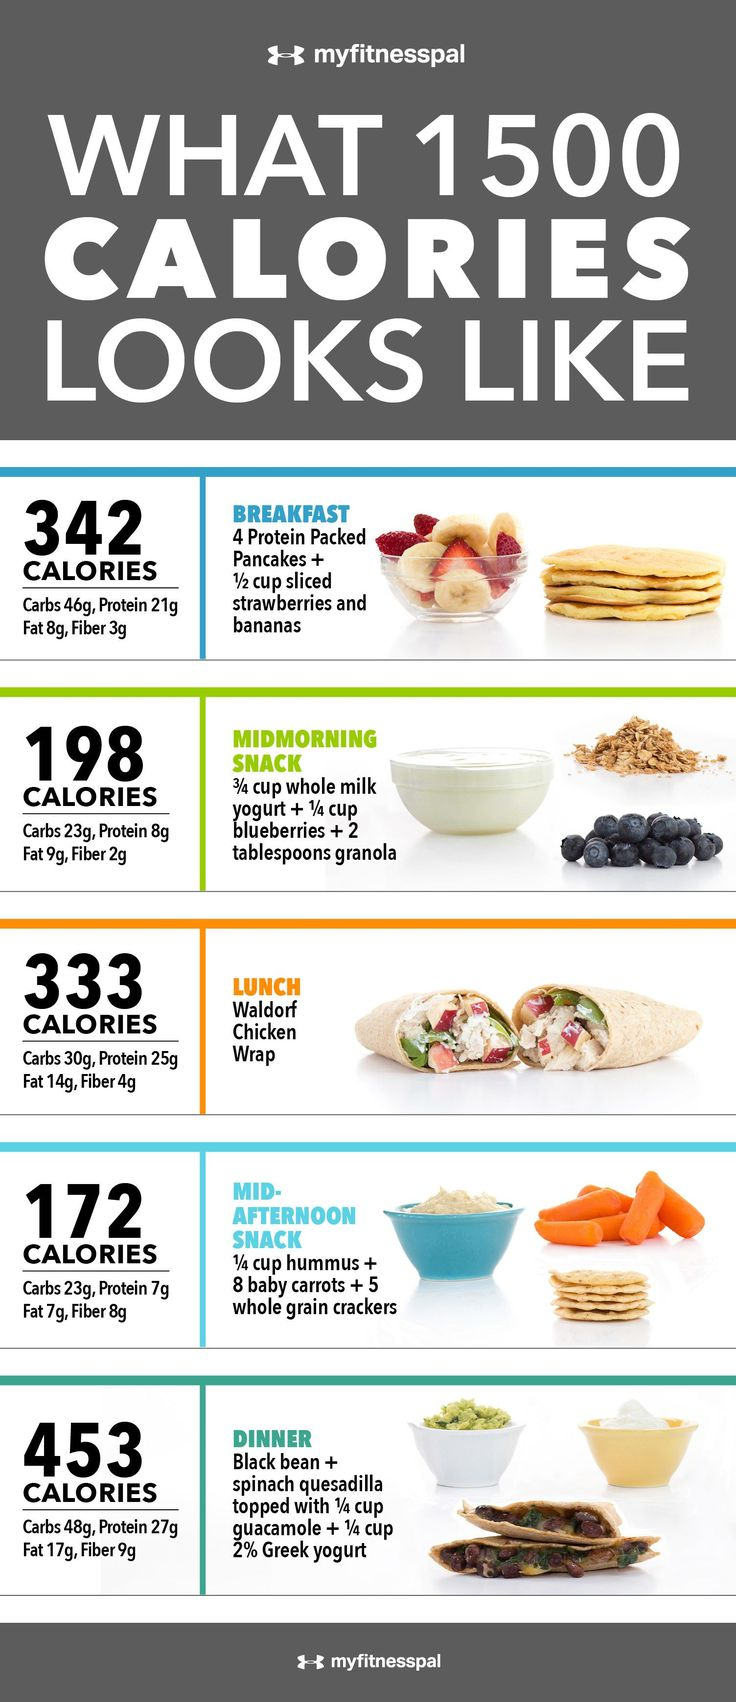 Trying to clean up your diet and cut calories? A budget of 1,500 calories a day can be pretty satisfying when you fill up on nutrient-rich foods like produce, lean proteins, healthy fats and whole grains. Here's a sample menu with some of our users' favorite MyFitnessPal recipes to show you just how delicious and …